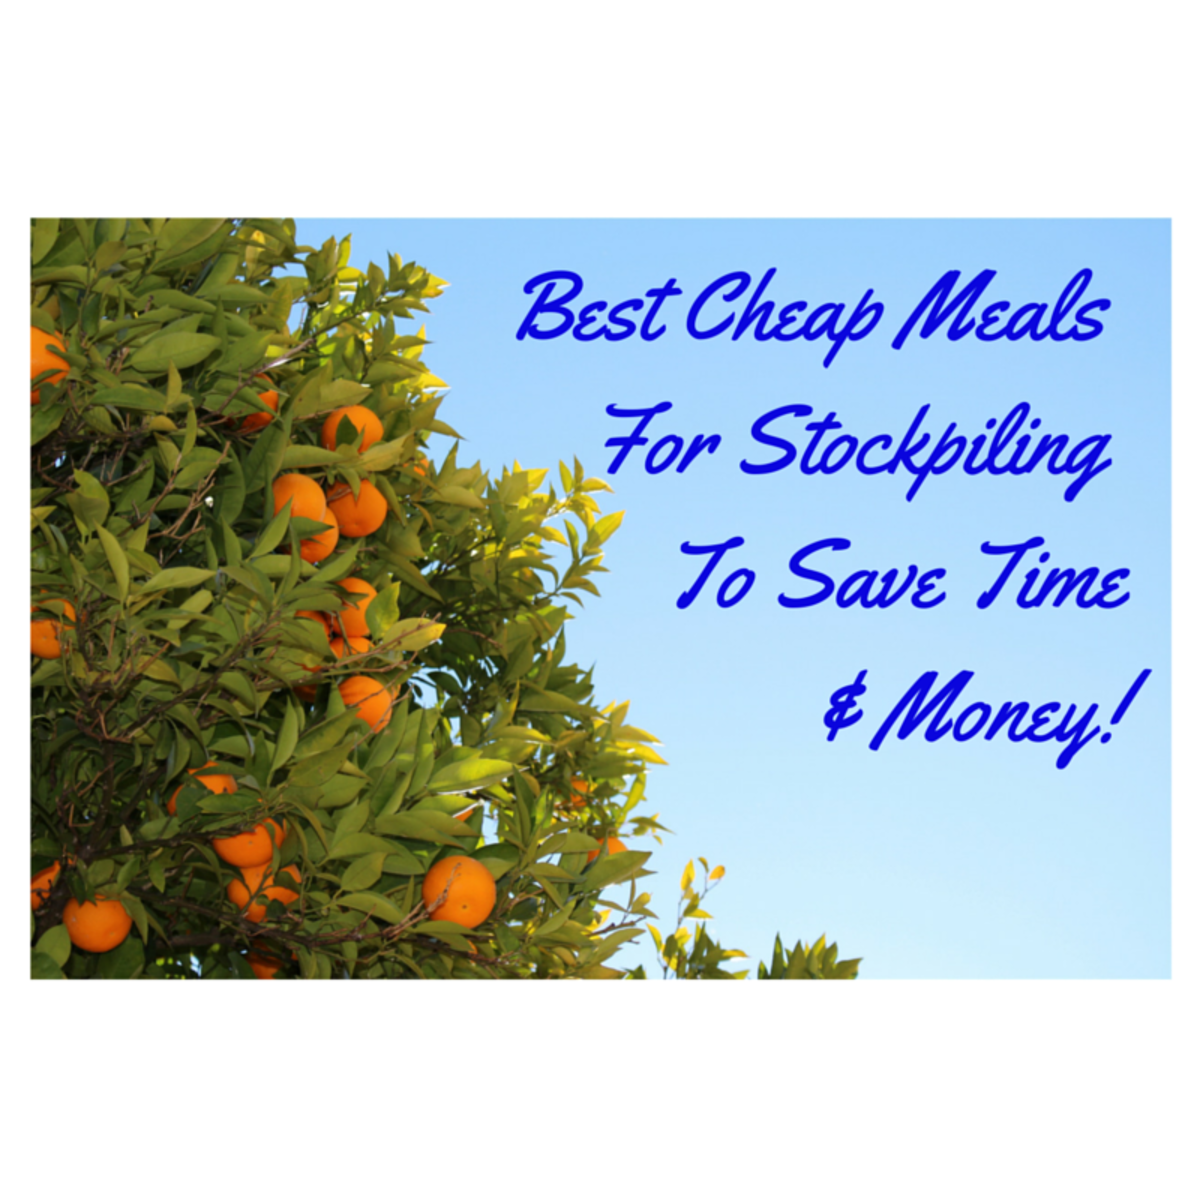 Cheap Meals:  How to Stockpile Them to Save Time and Money